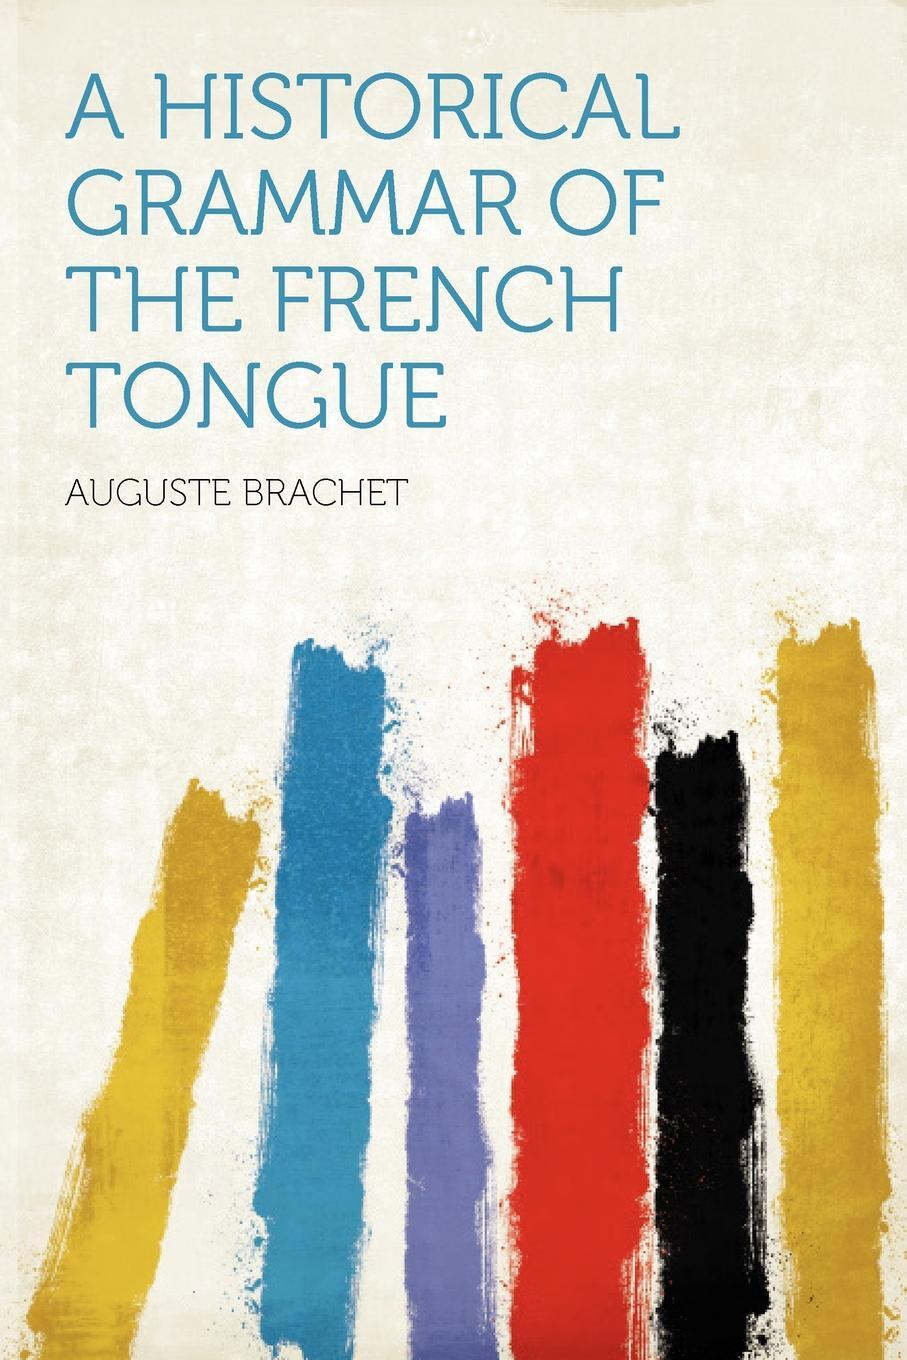 A Historical Grammar of the French Tongue.